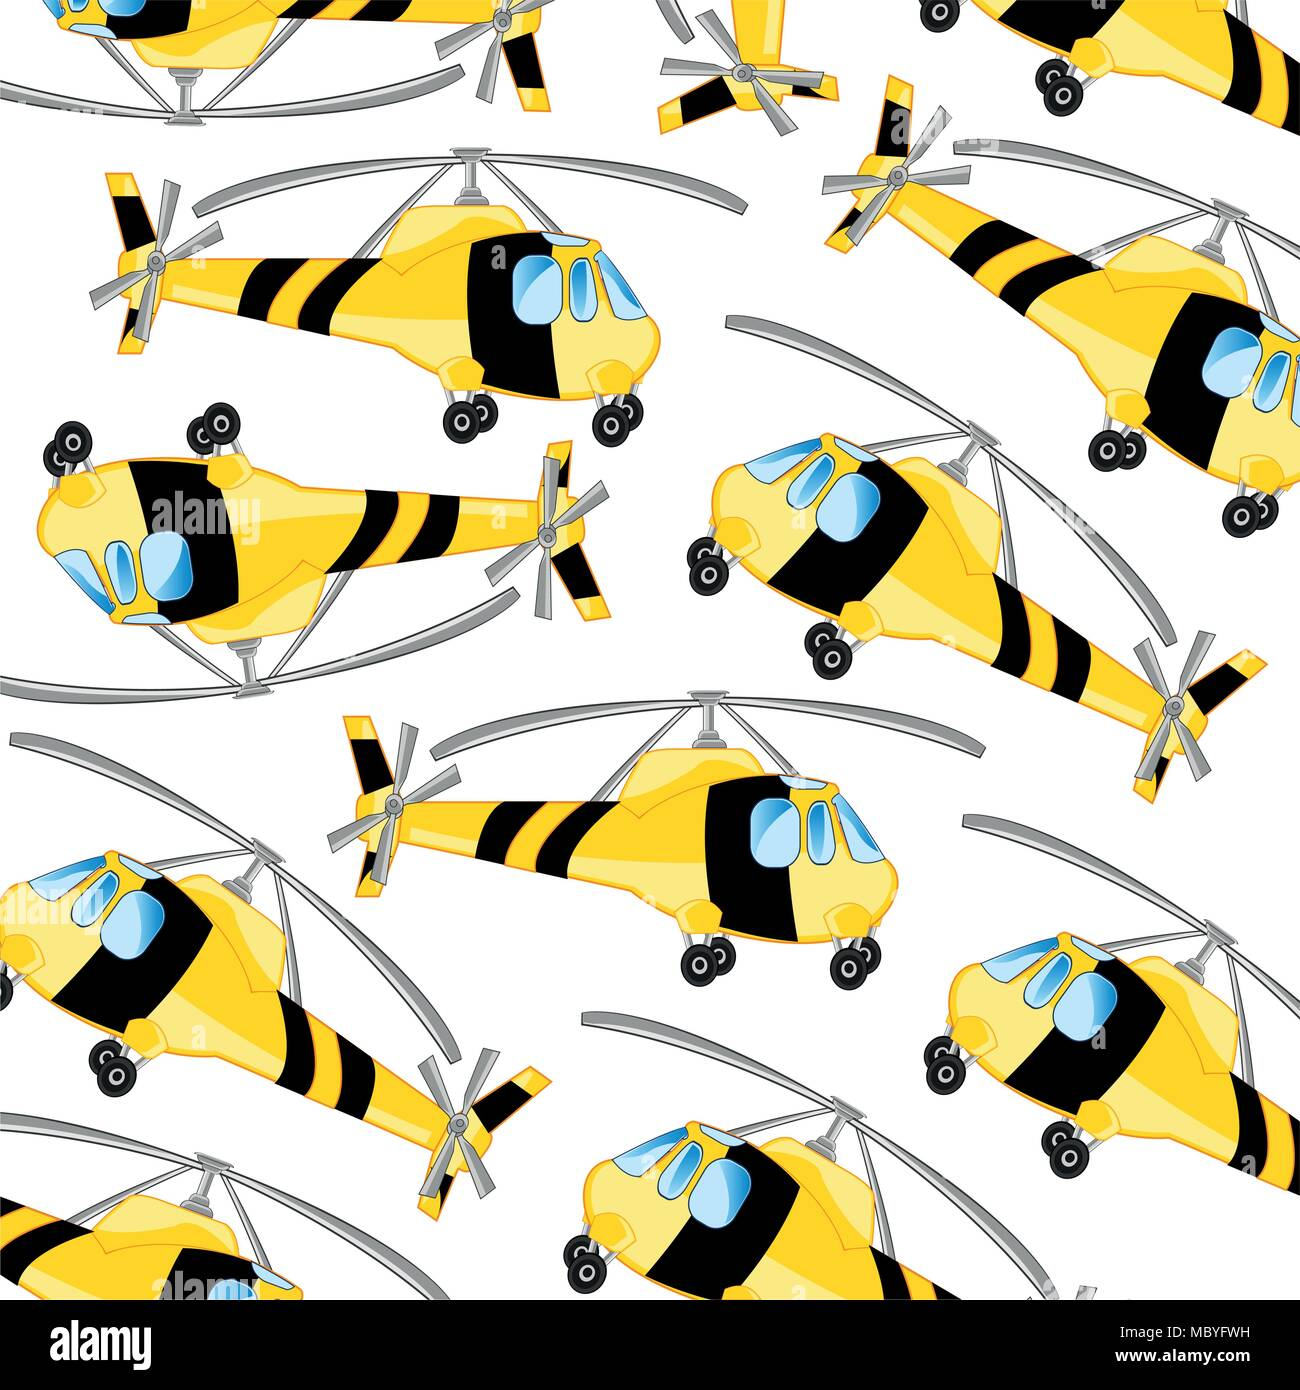 Yellow helicopter pattern - Stock Vector